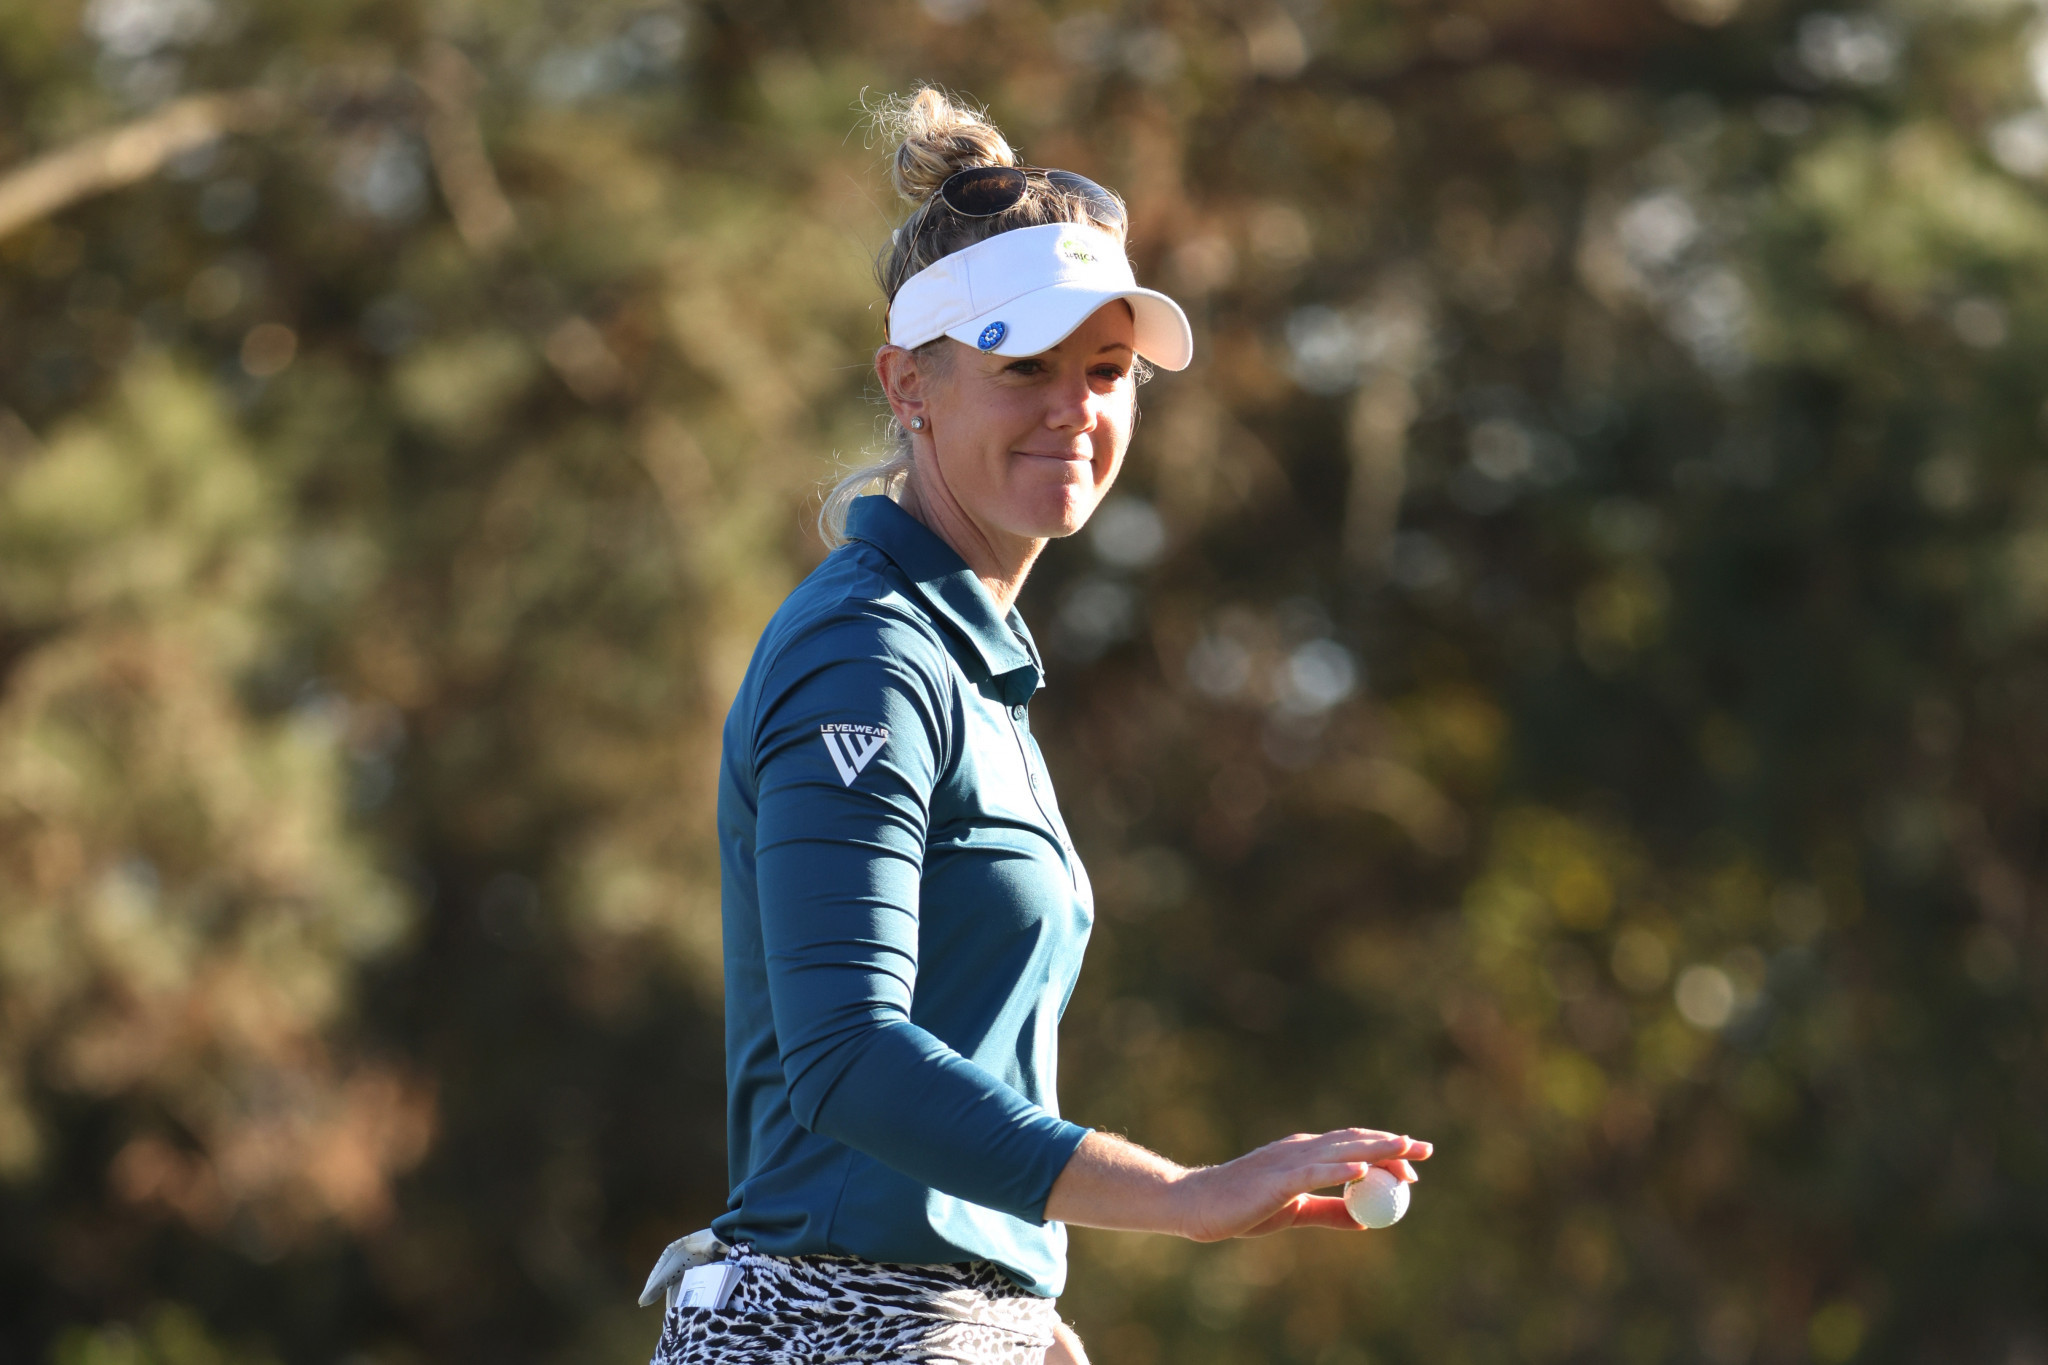 Olson holds early lead at US Women's Open after hitting hole-in-one